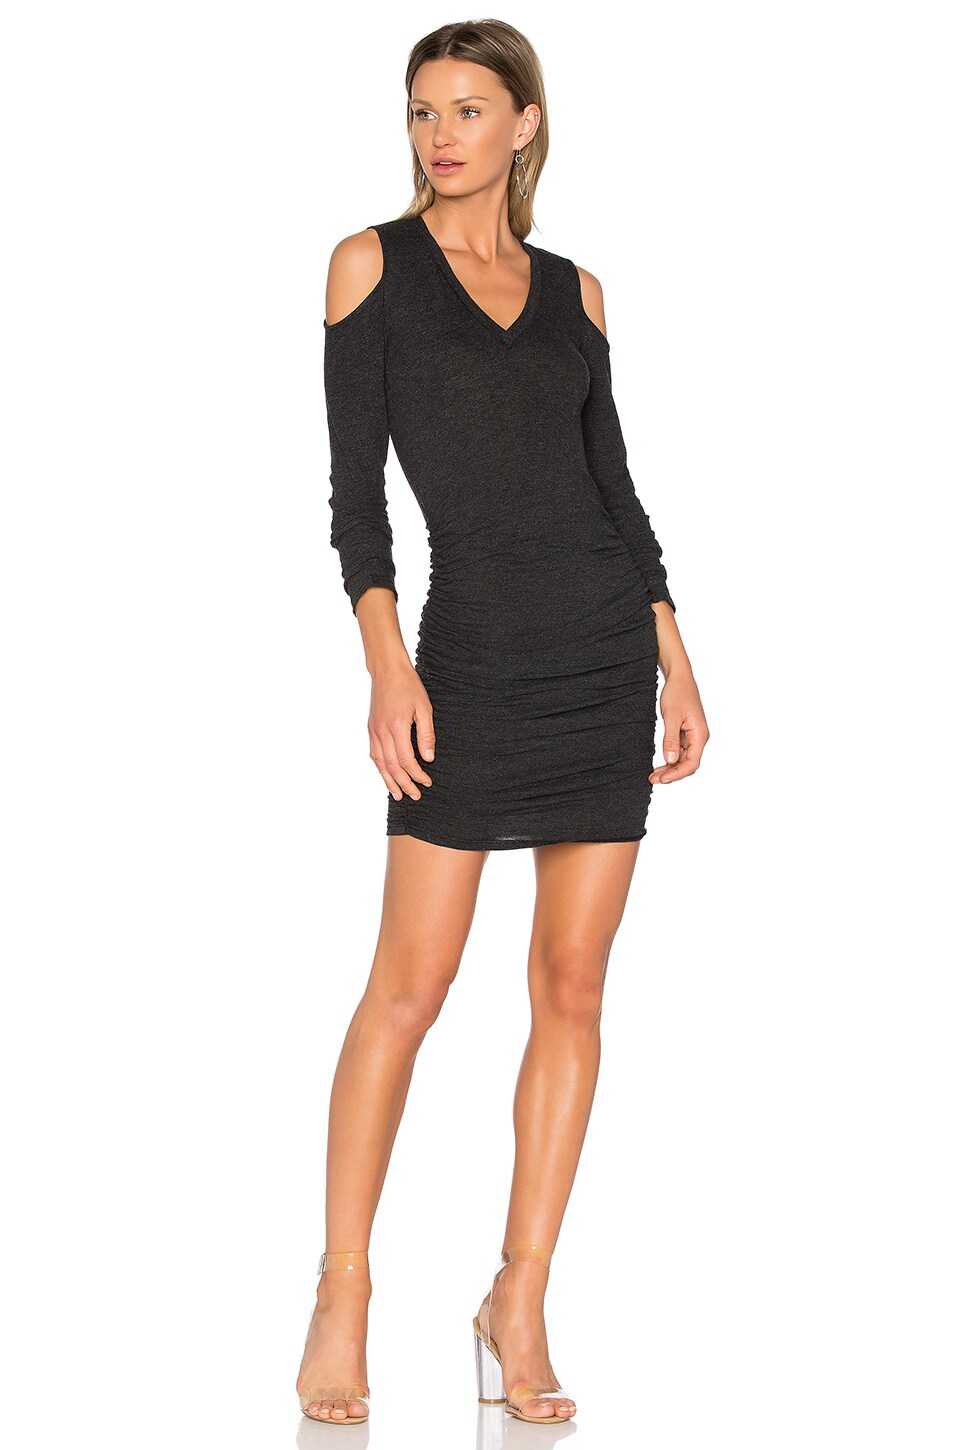 Cutout Dress by Lanston